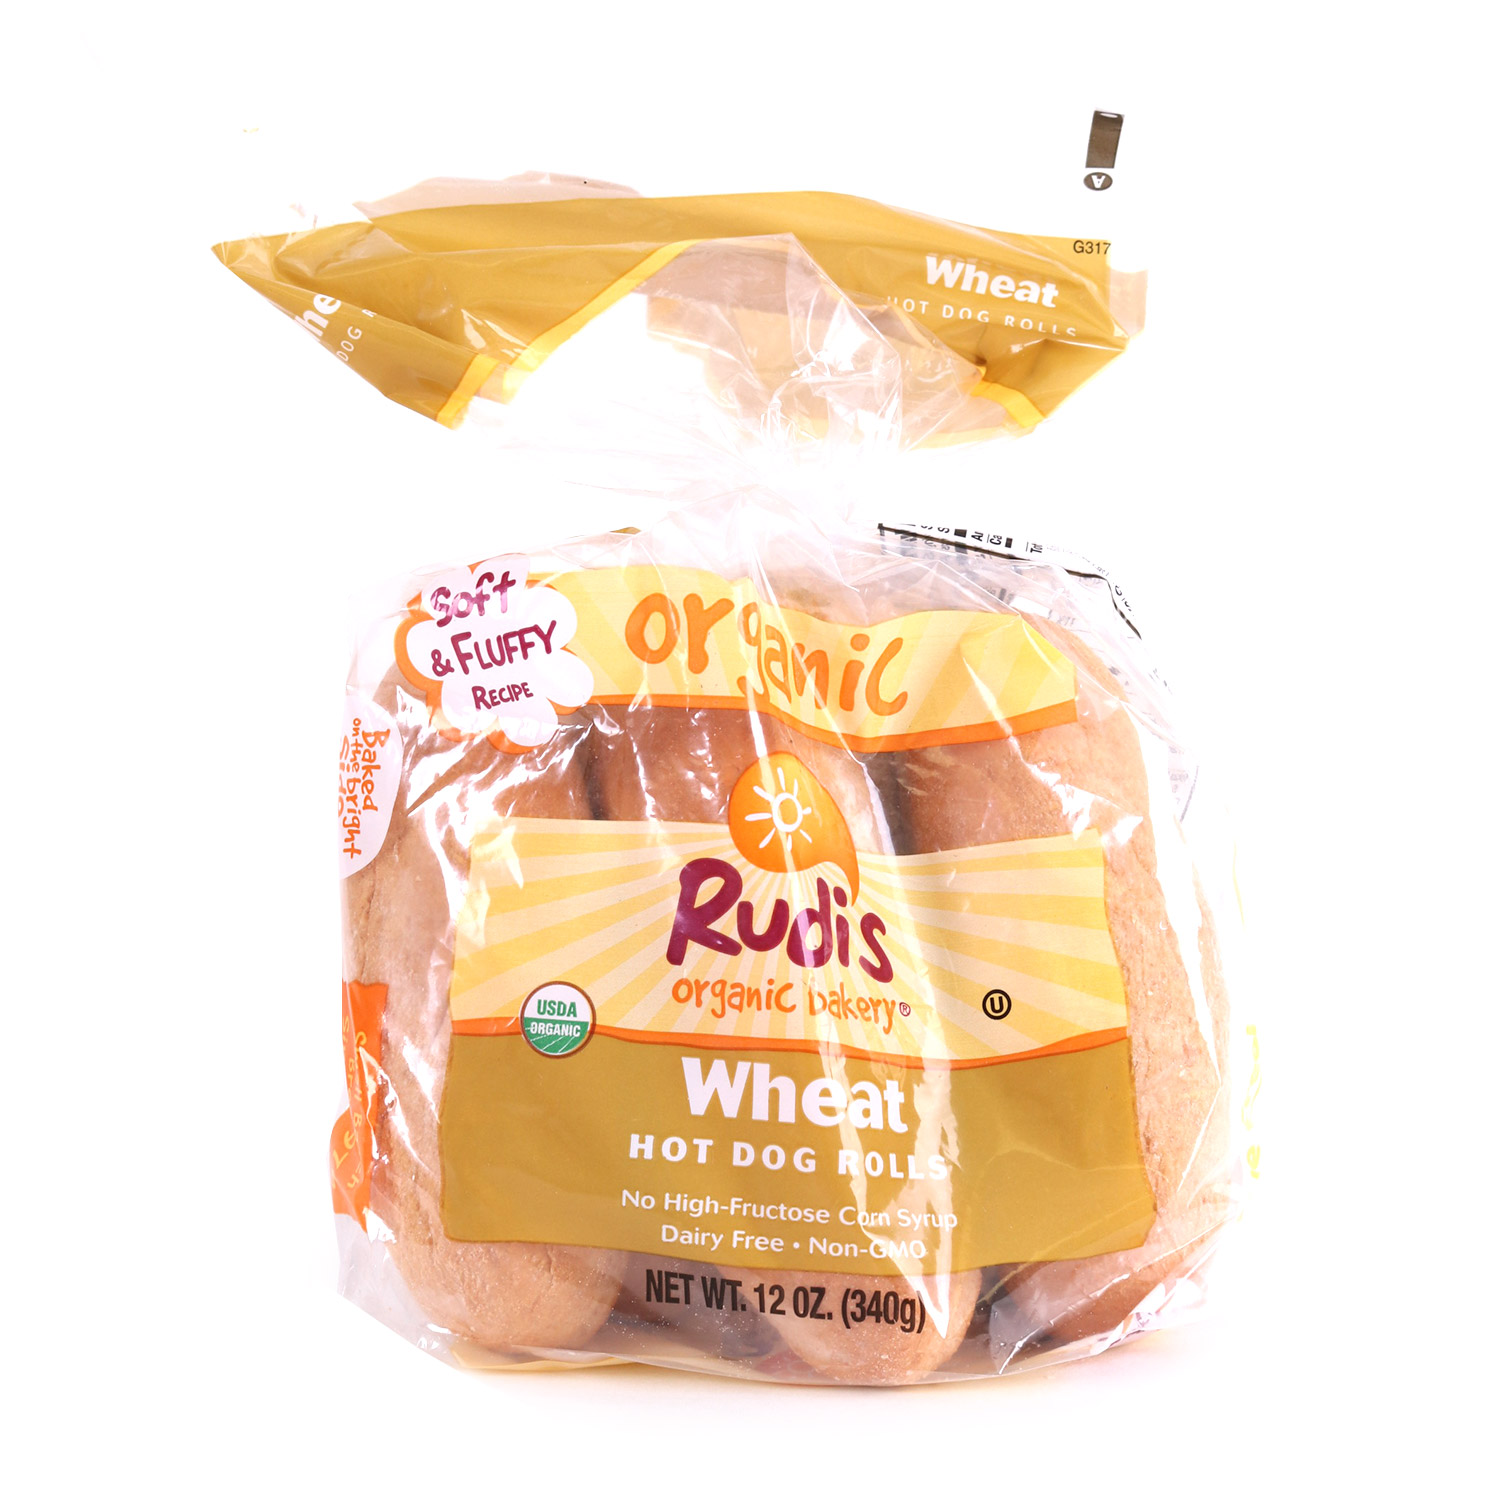 Buns, Wheat Hot Dog-Organic